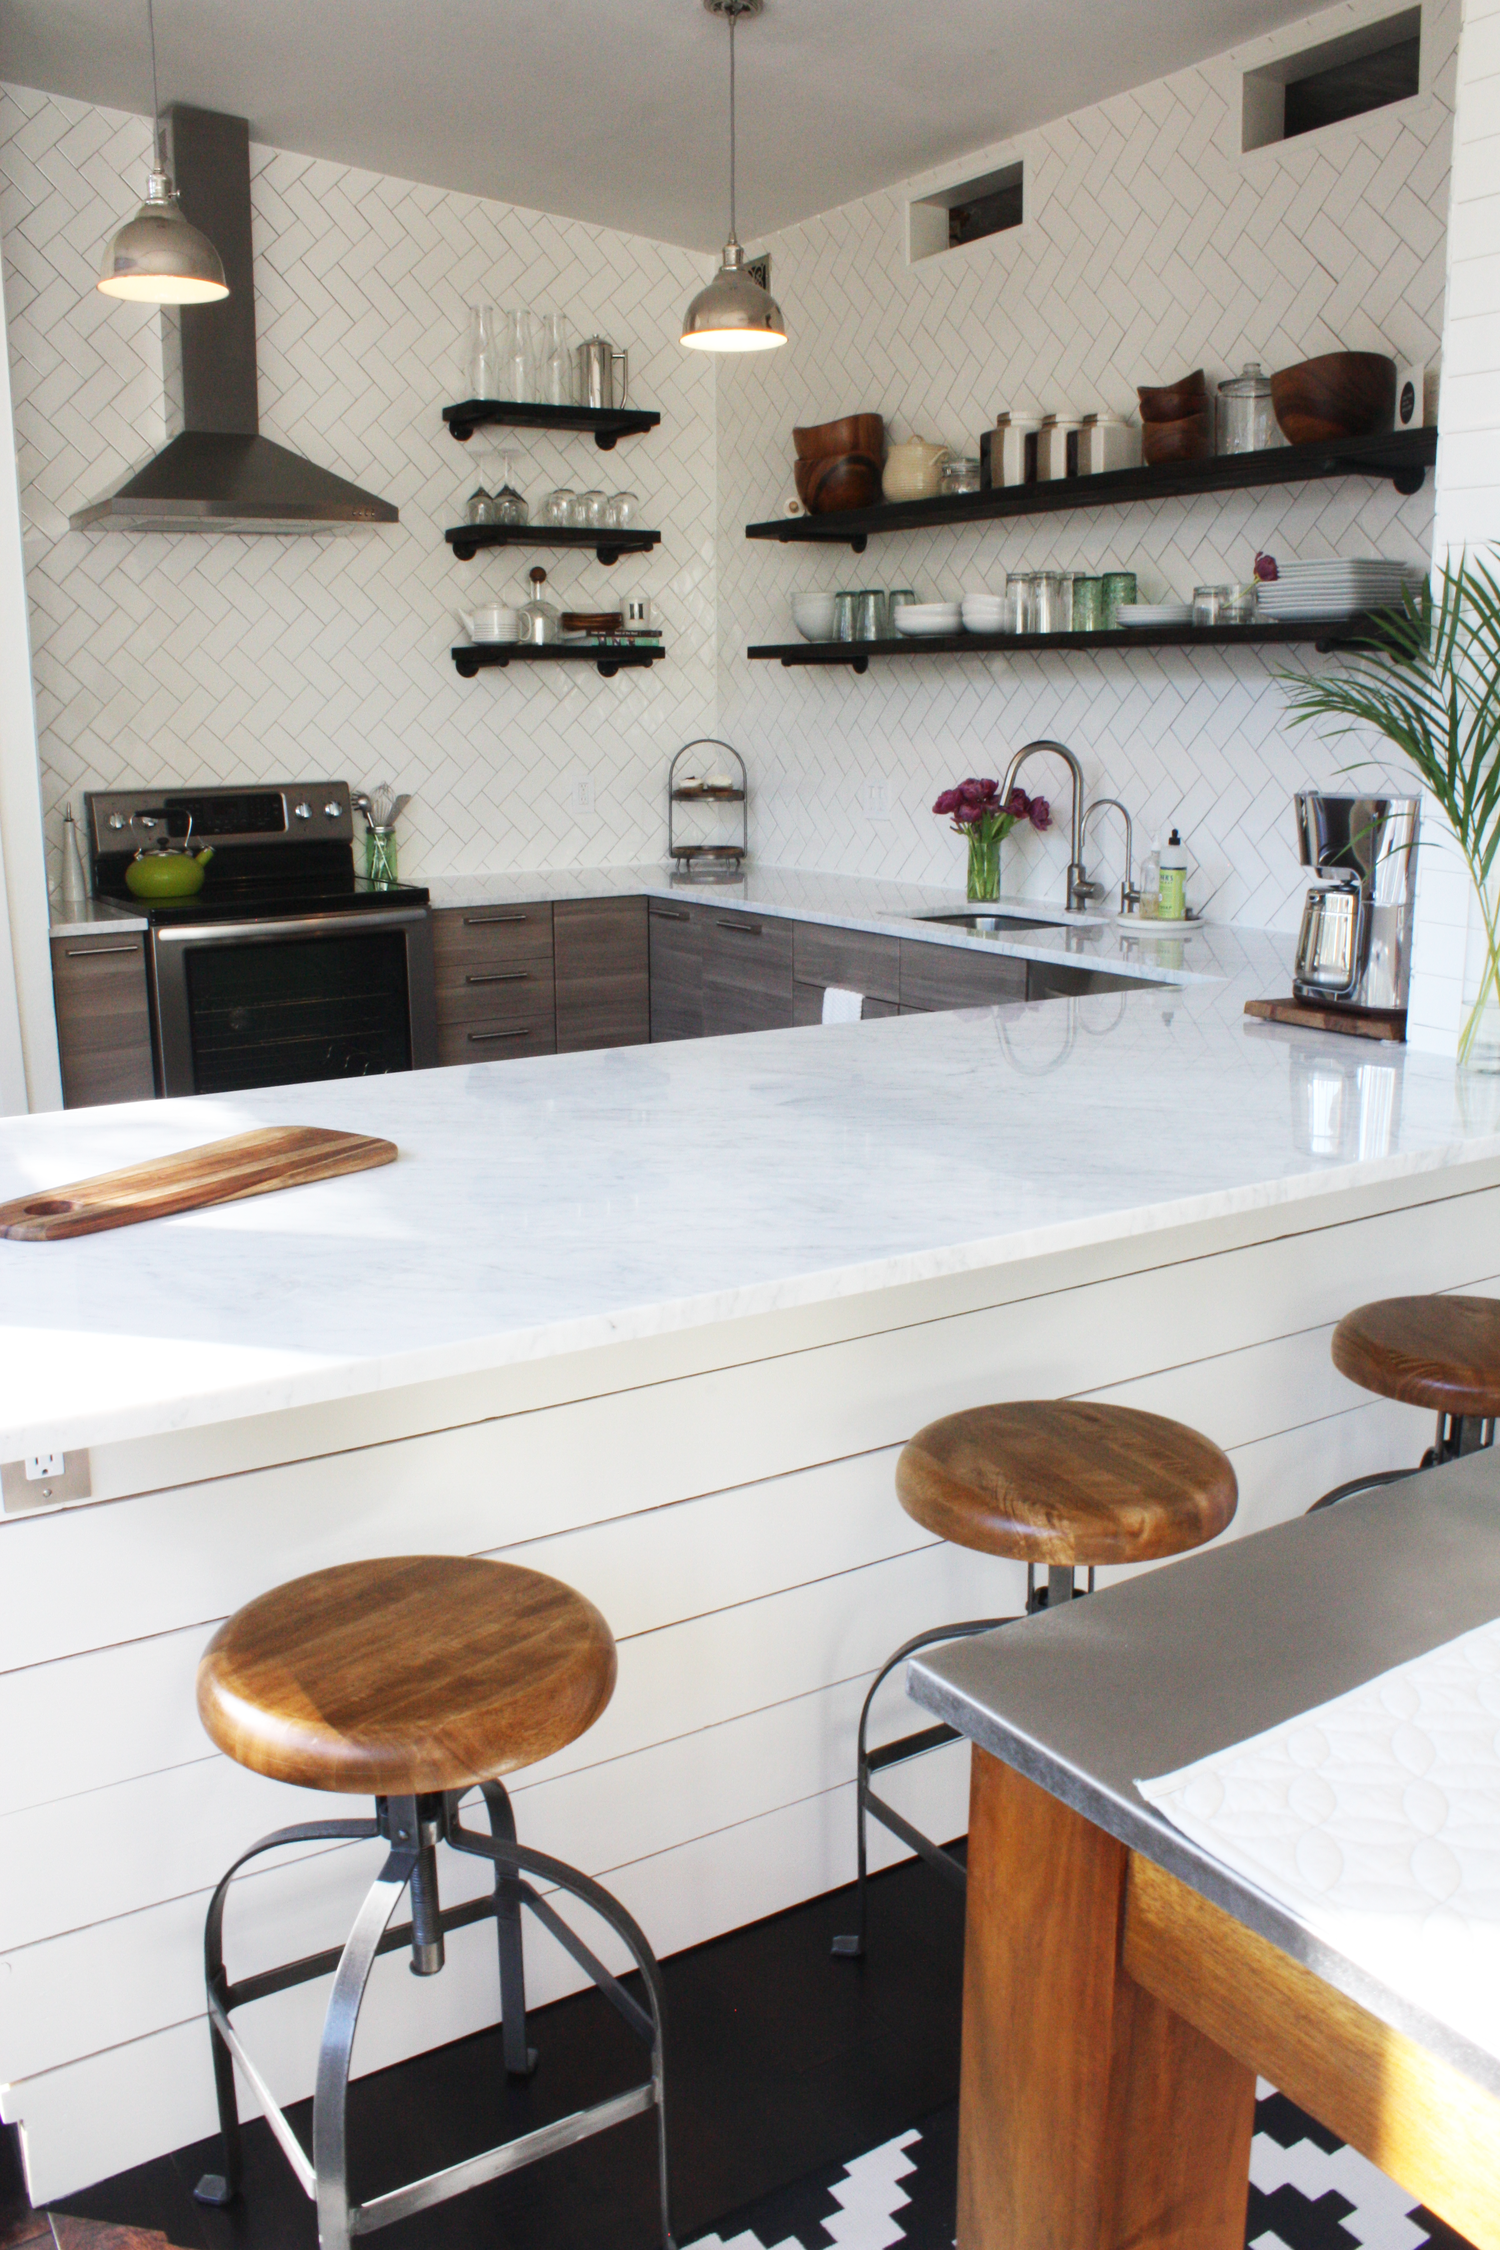 A Builder Grade Kitchen Gets the Style It Craves